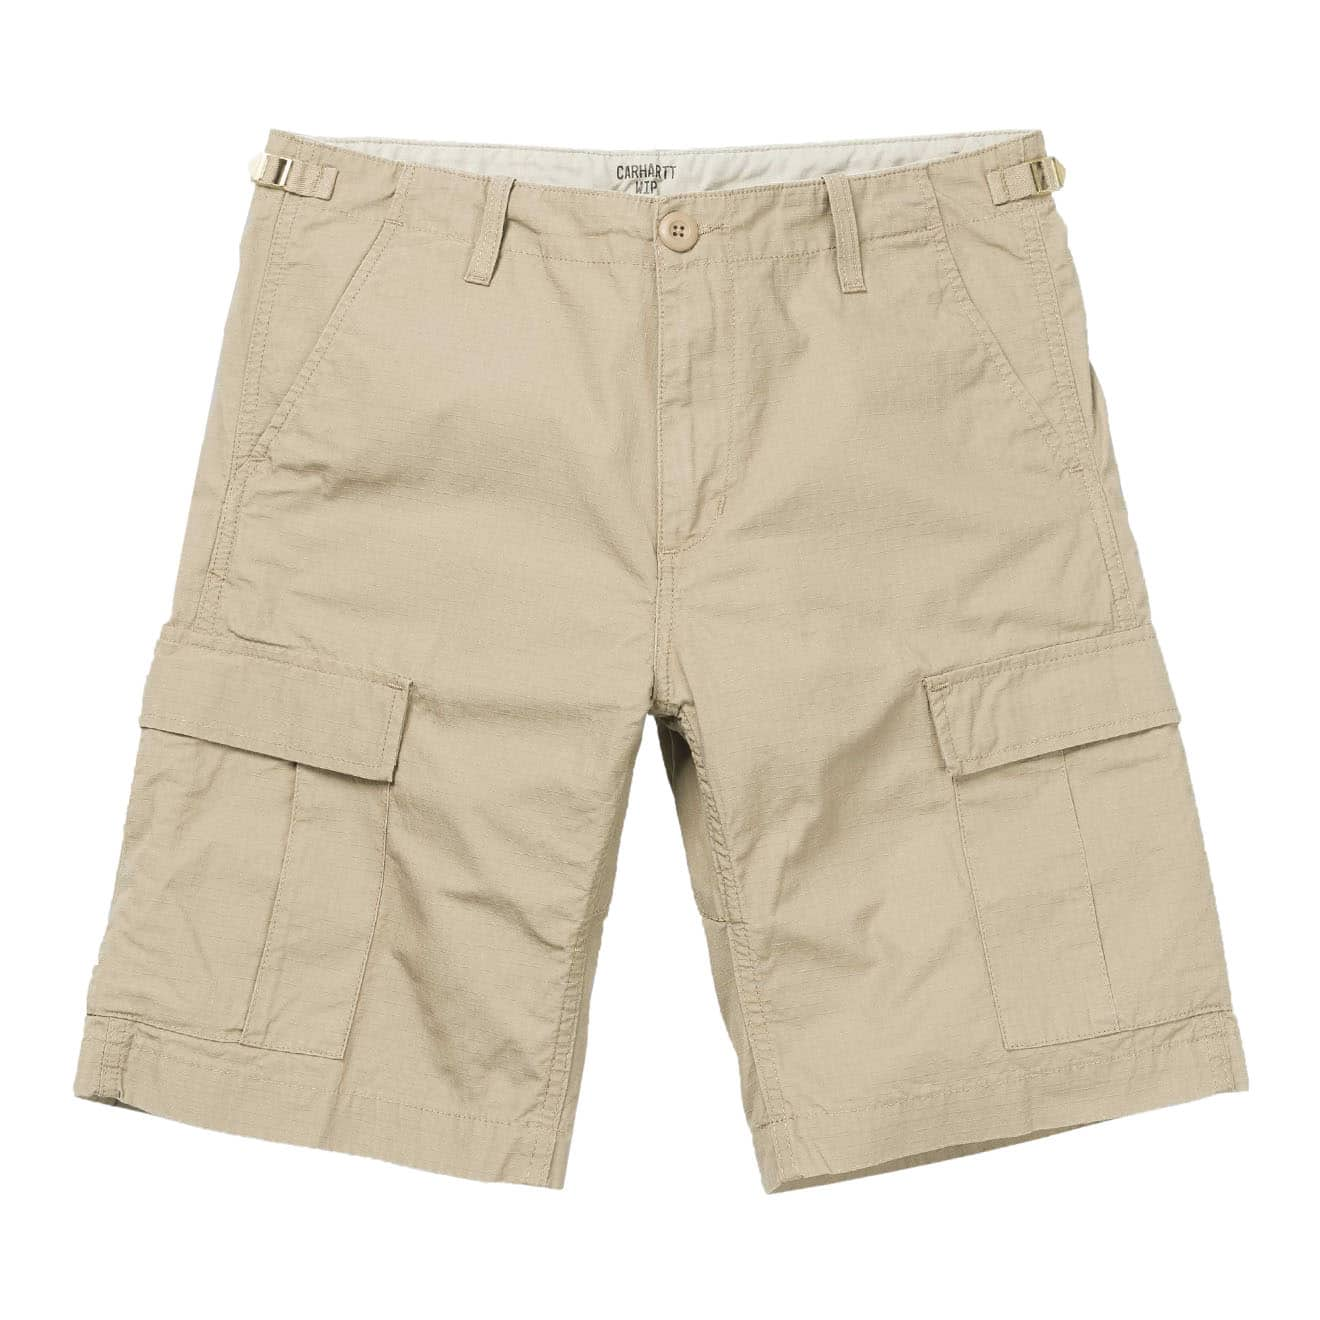 Carhartt Aviation Shorts 100% Cotton Leather Rinsed